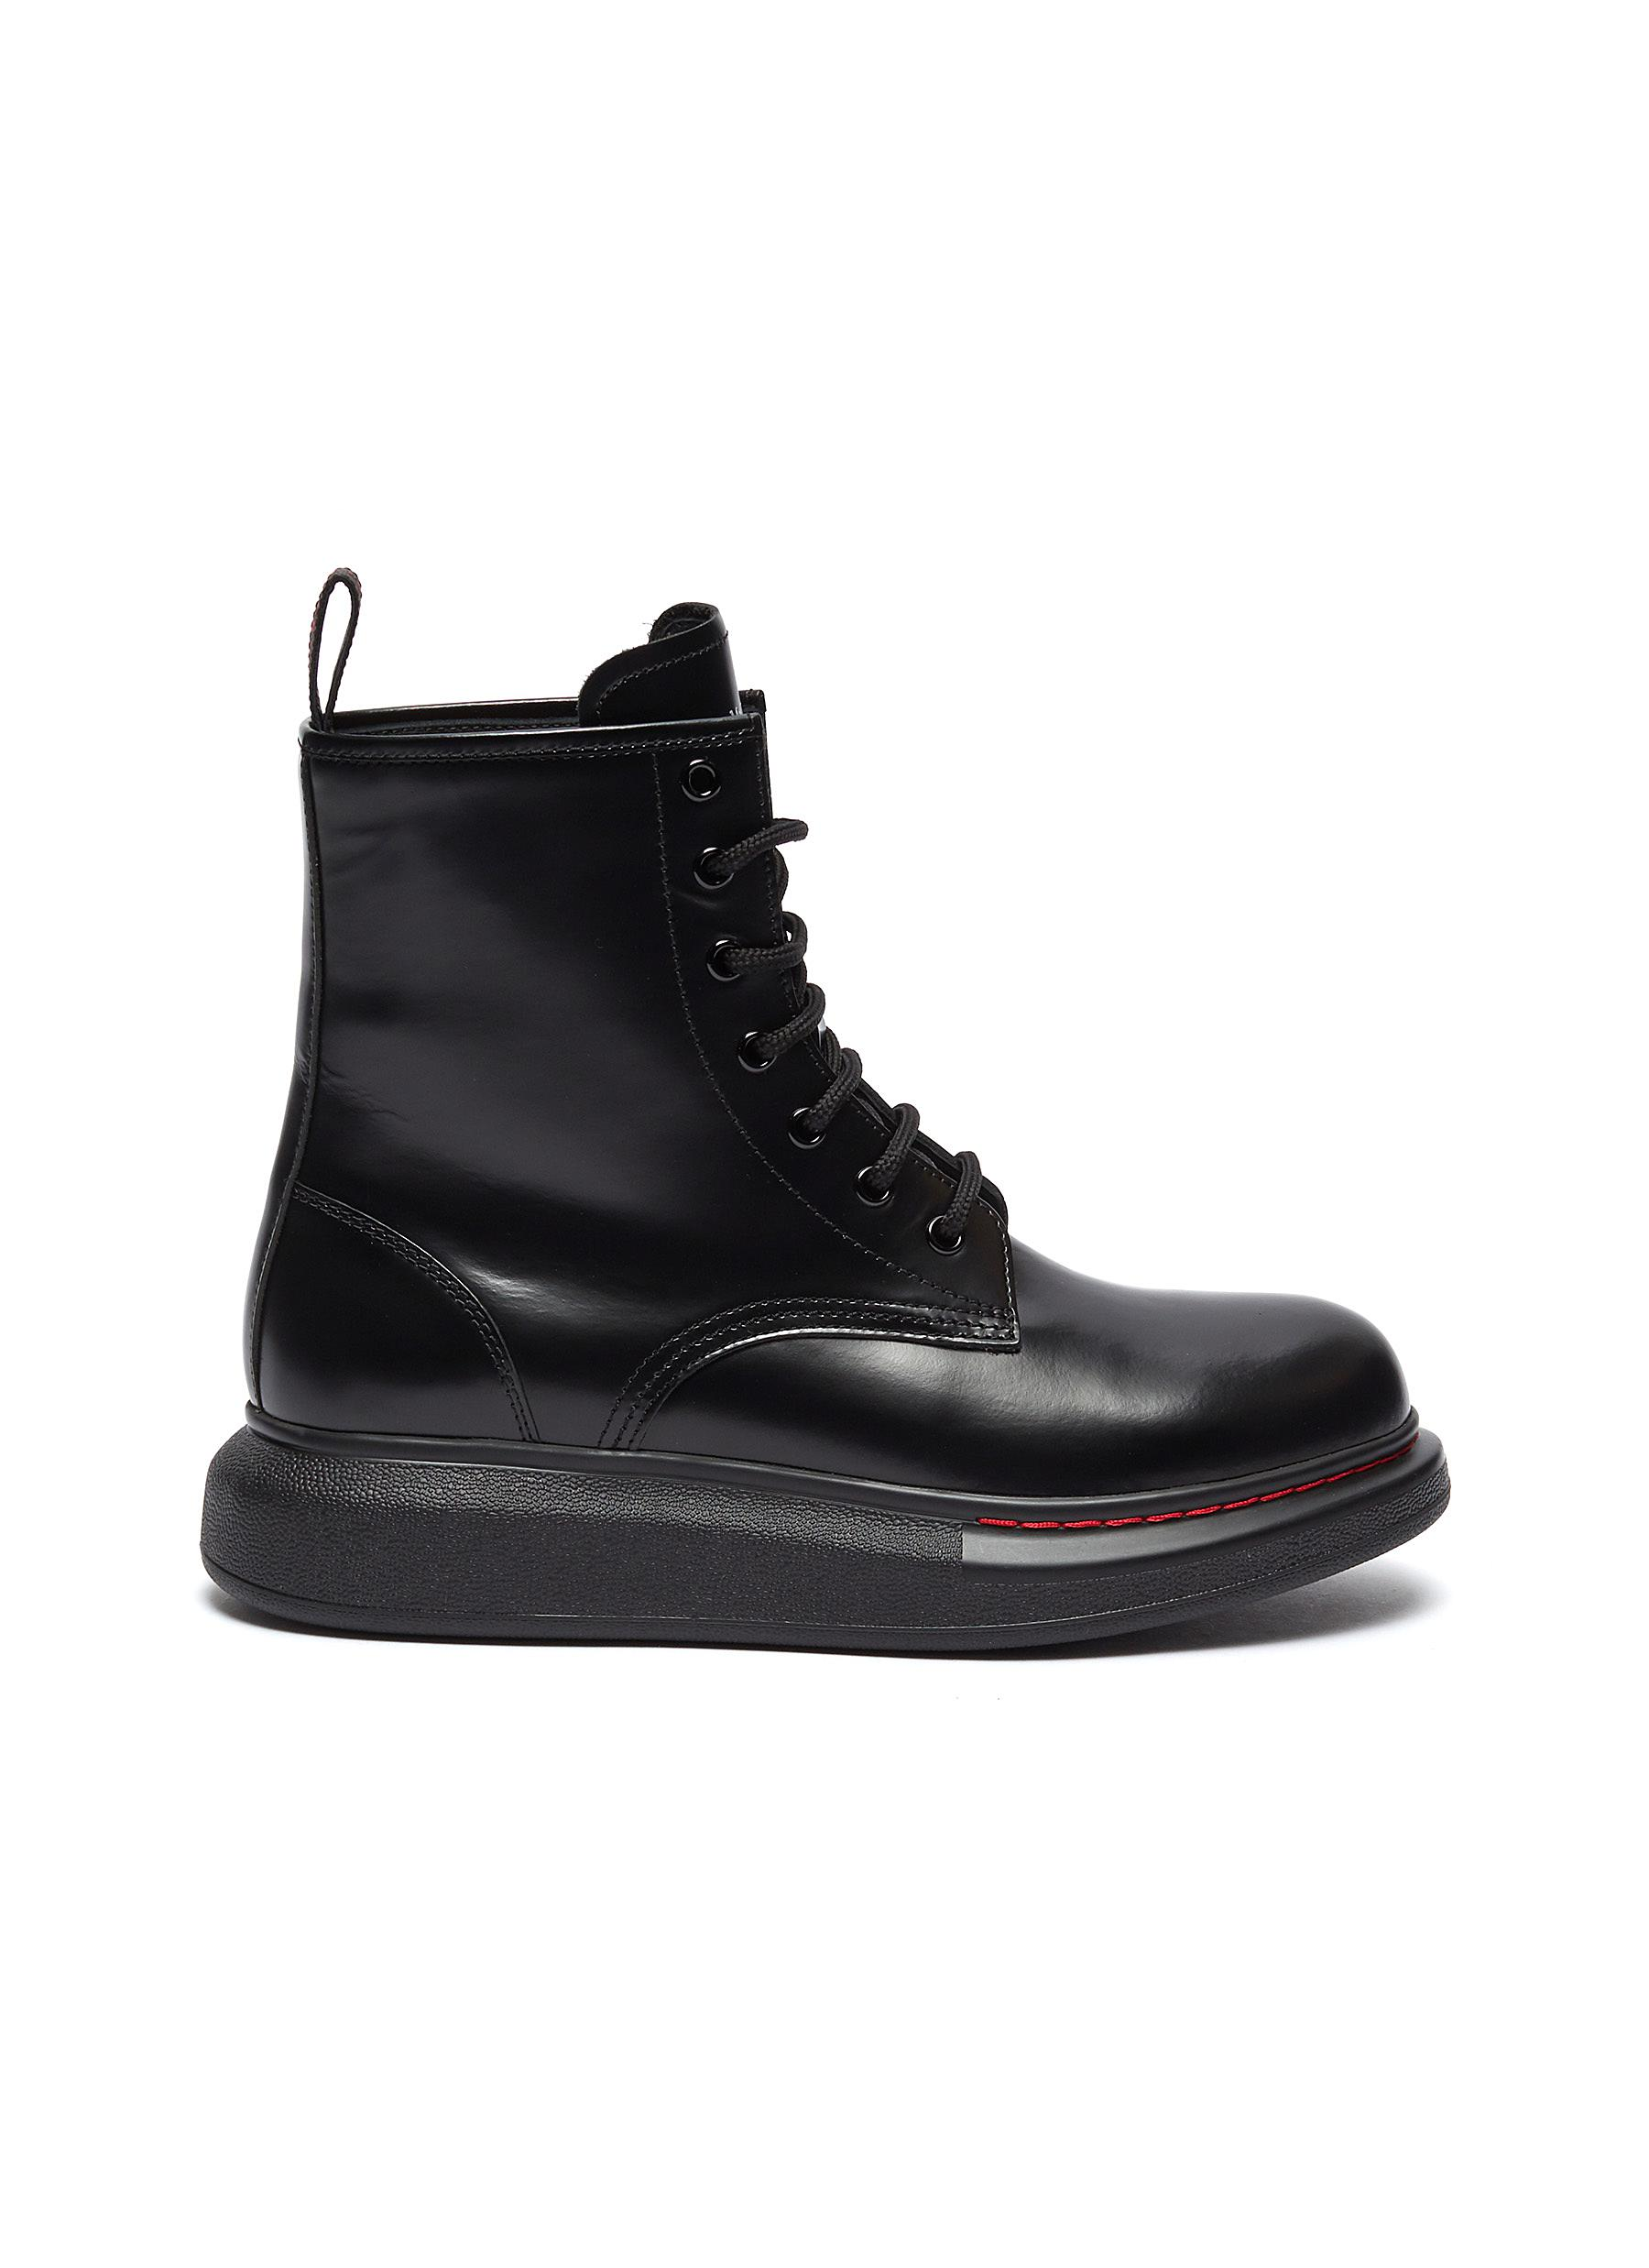 Oversized Combat Boot in leather by Alexander Mcqueen